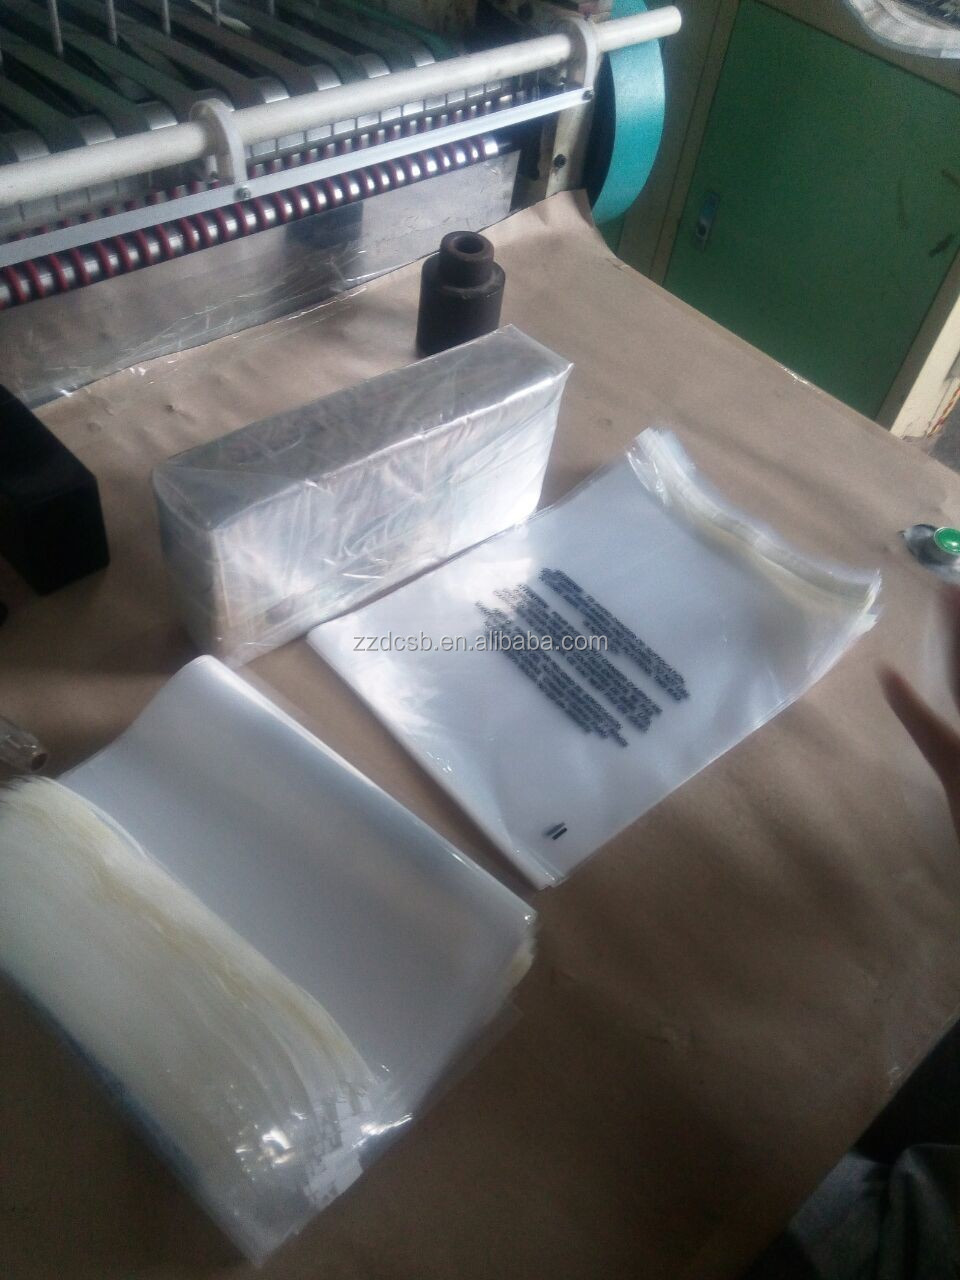 Clear 1.5mil (38micron) PP/LDPE 9*12 inch Polybag With Strong Glue Tape & Black Suffocation Warning Printing